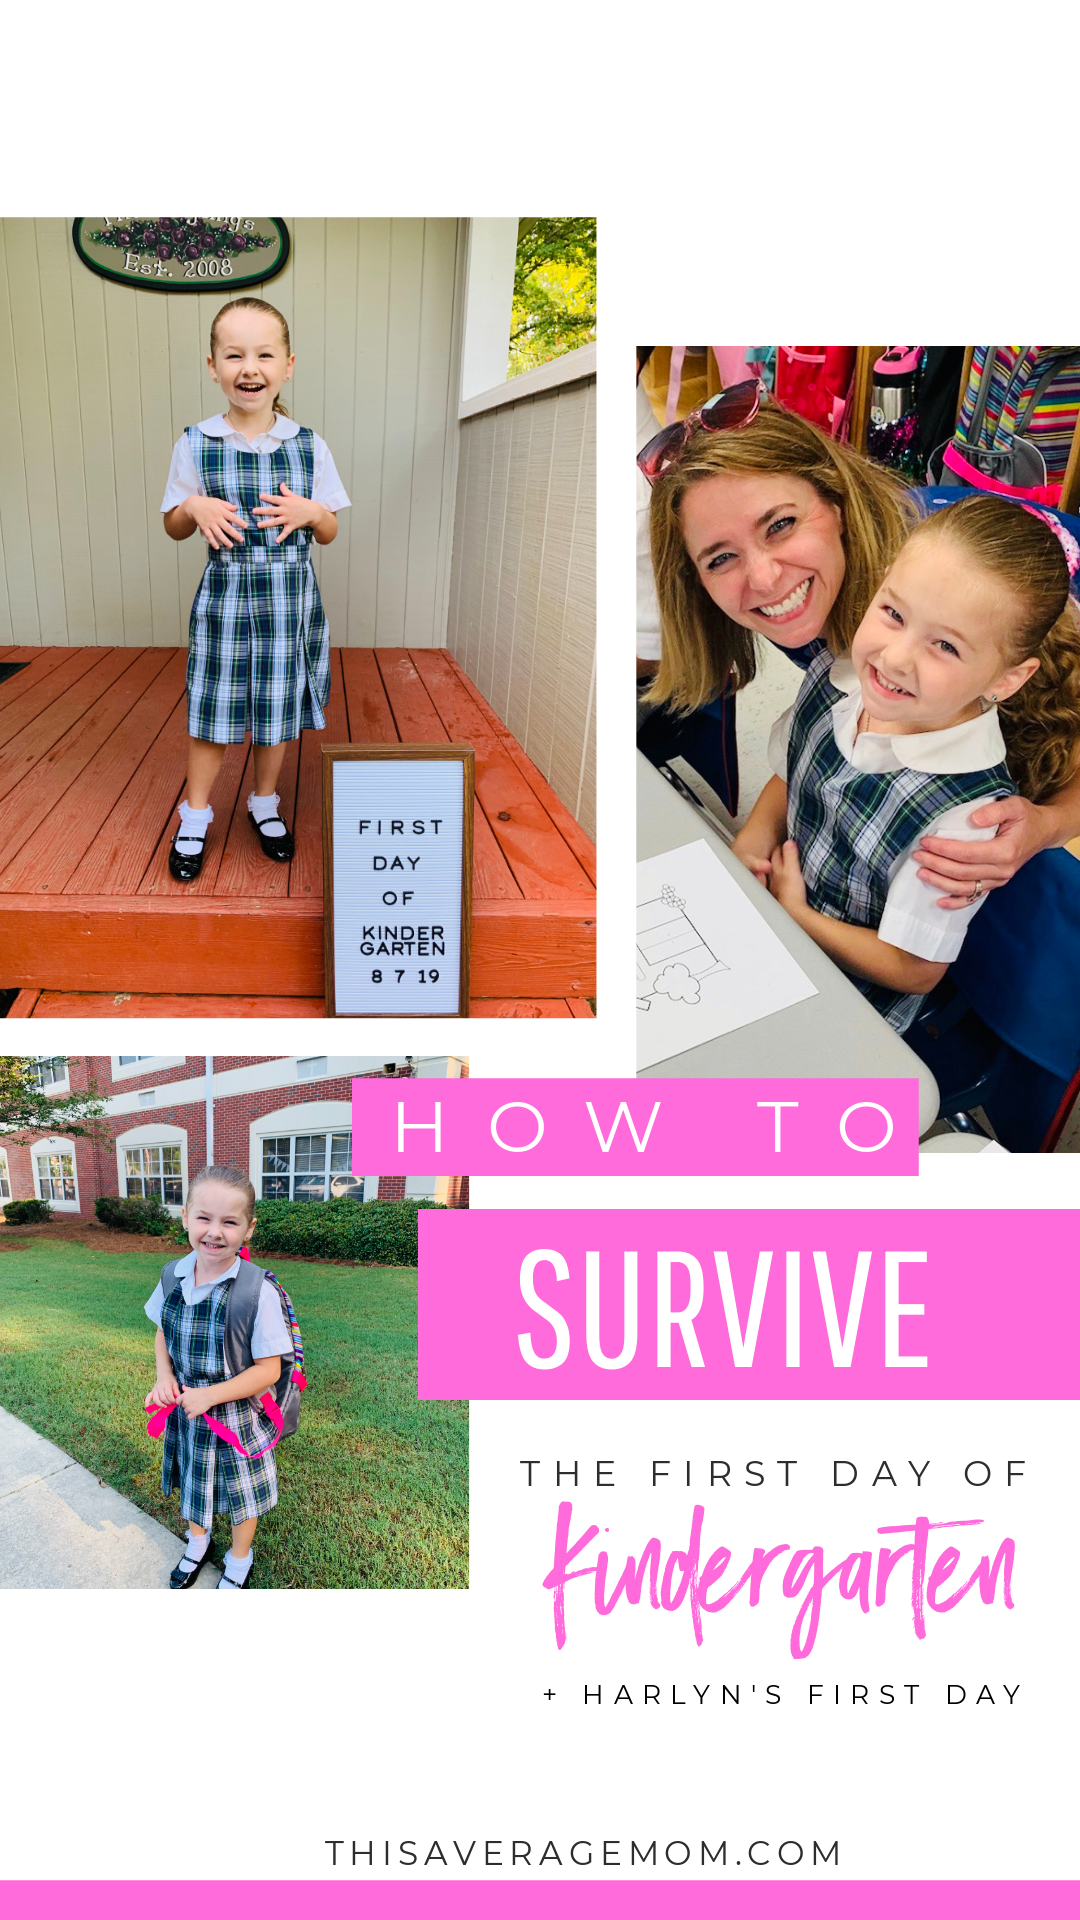 If you have a child entering Kindergarten, you might feel a little nervous. I was too. But the first day can be a good day!! Here's how to survive the first day of Kindergarten. #school #firstday